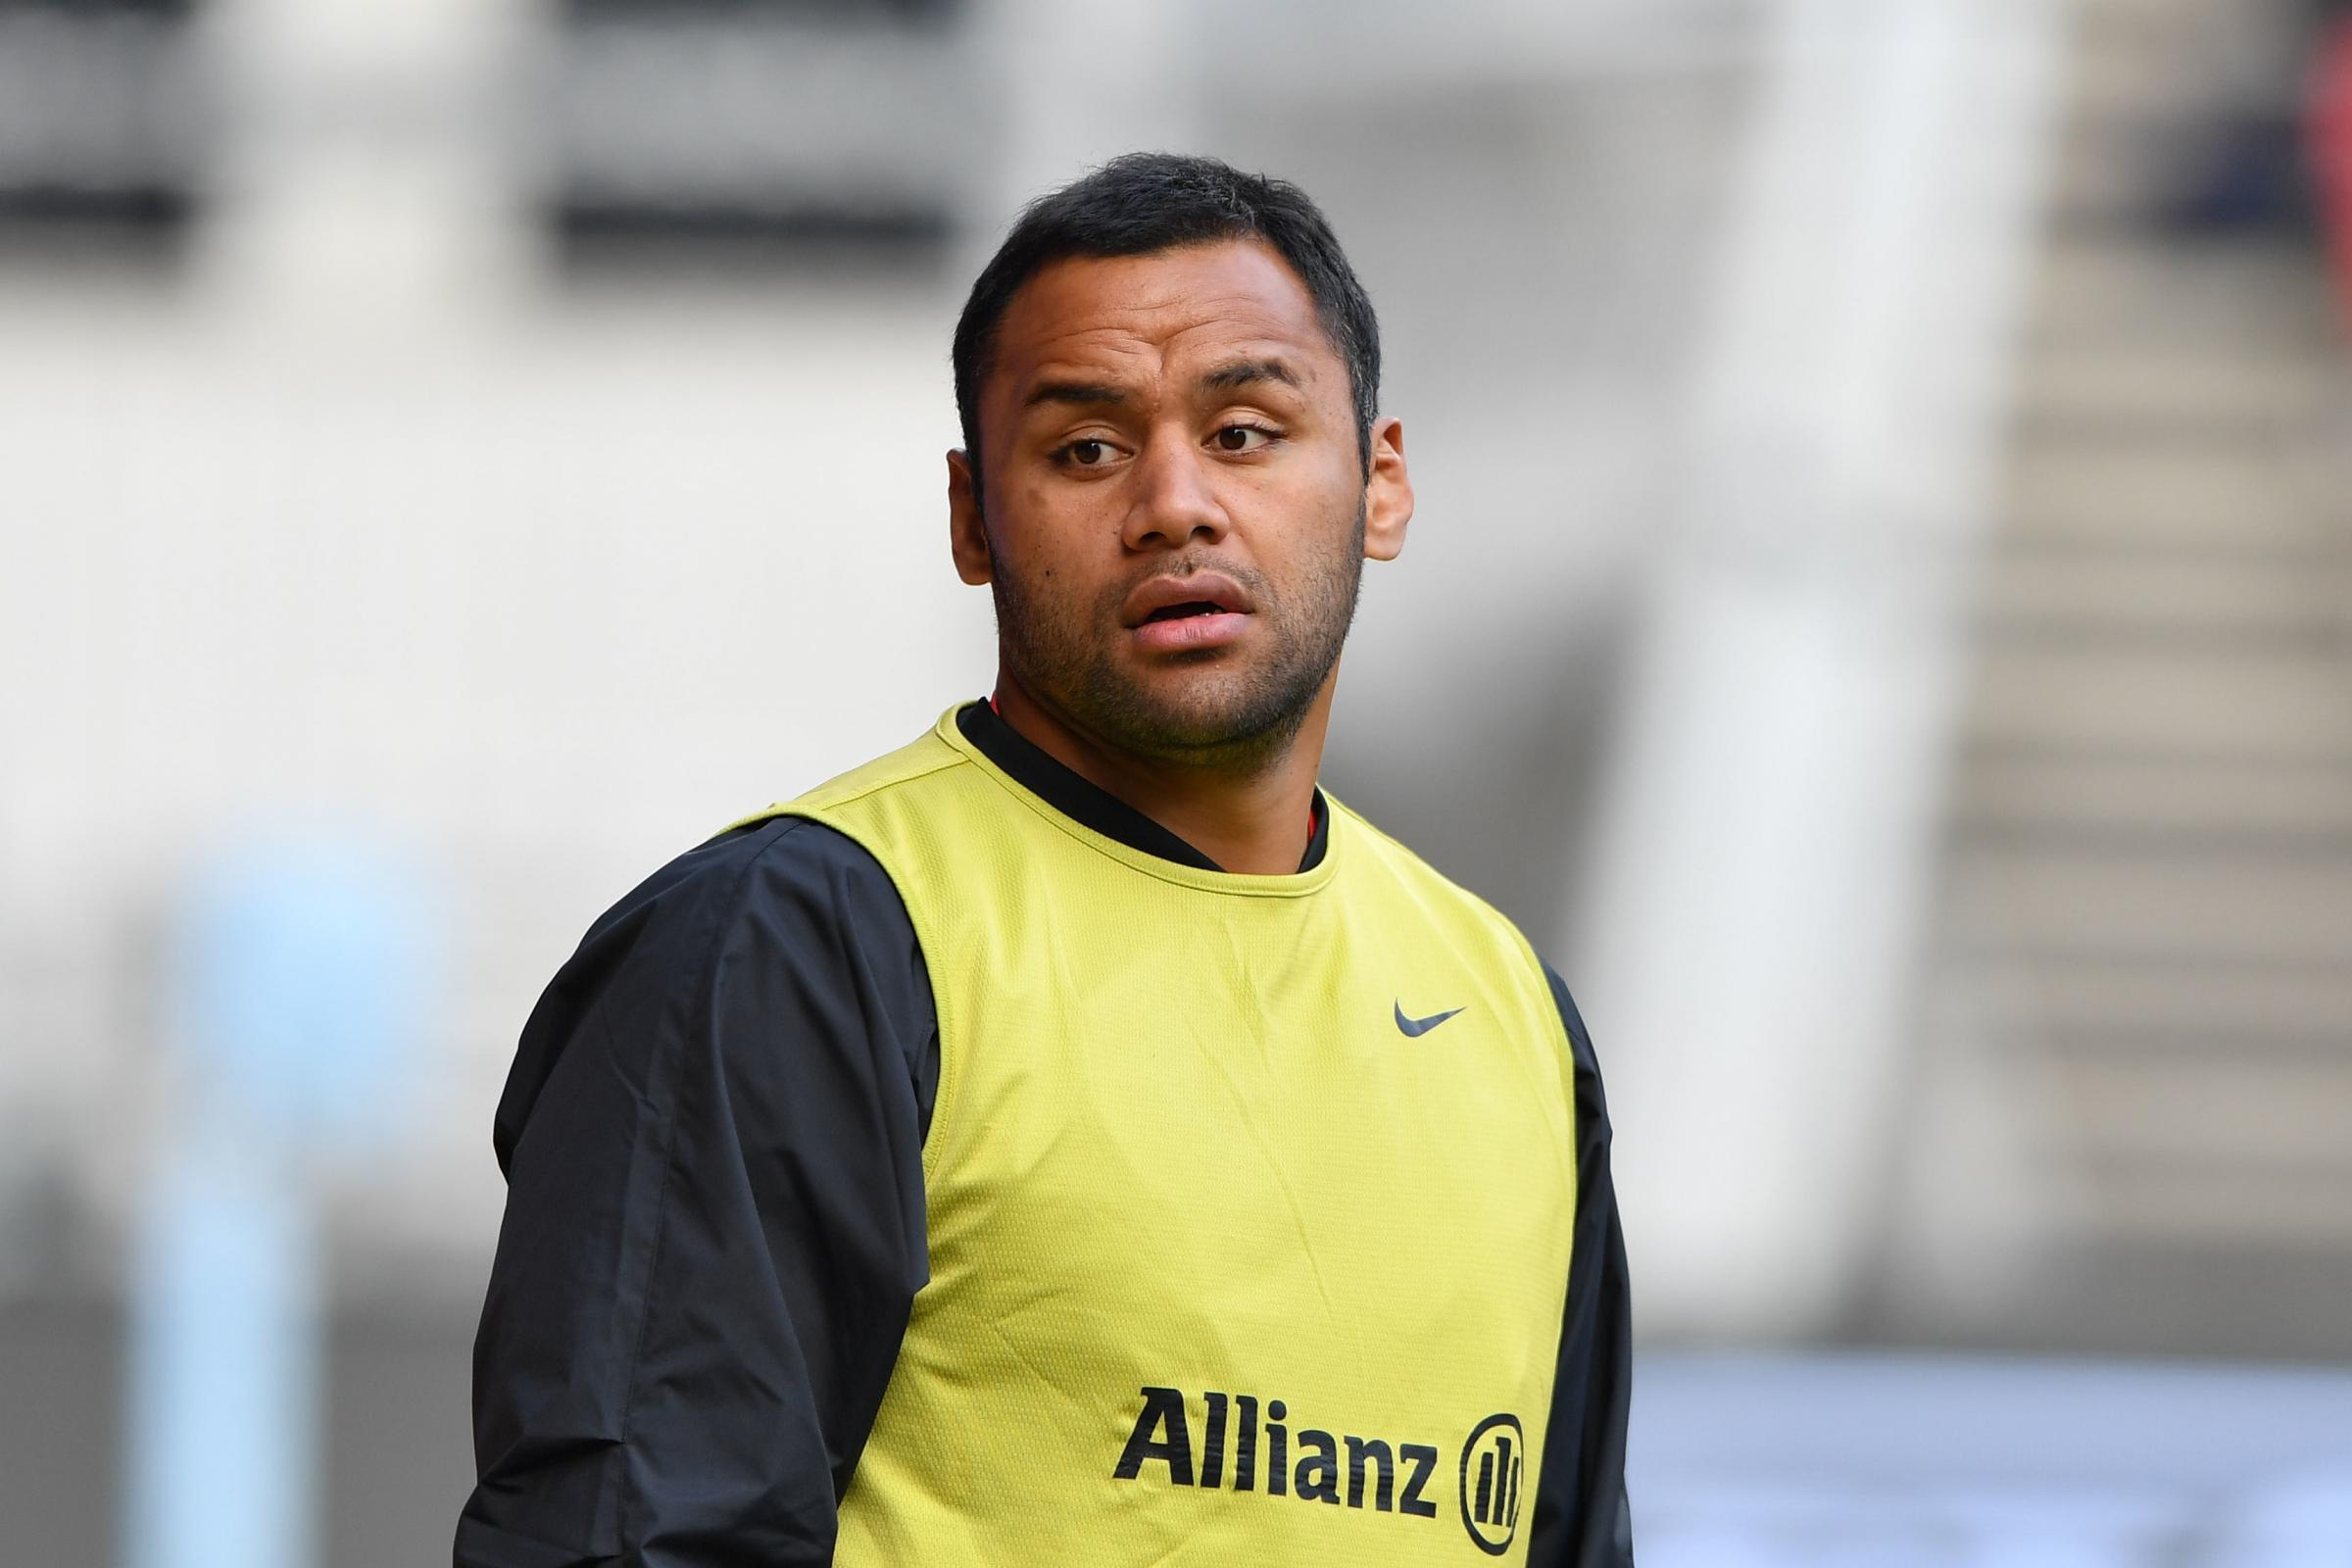 Billy Vunipola has been formally warned by Saracens